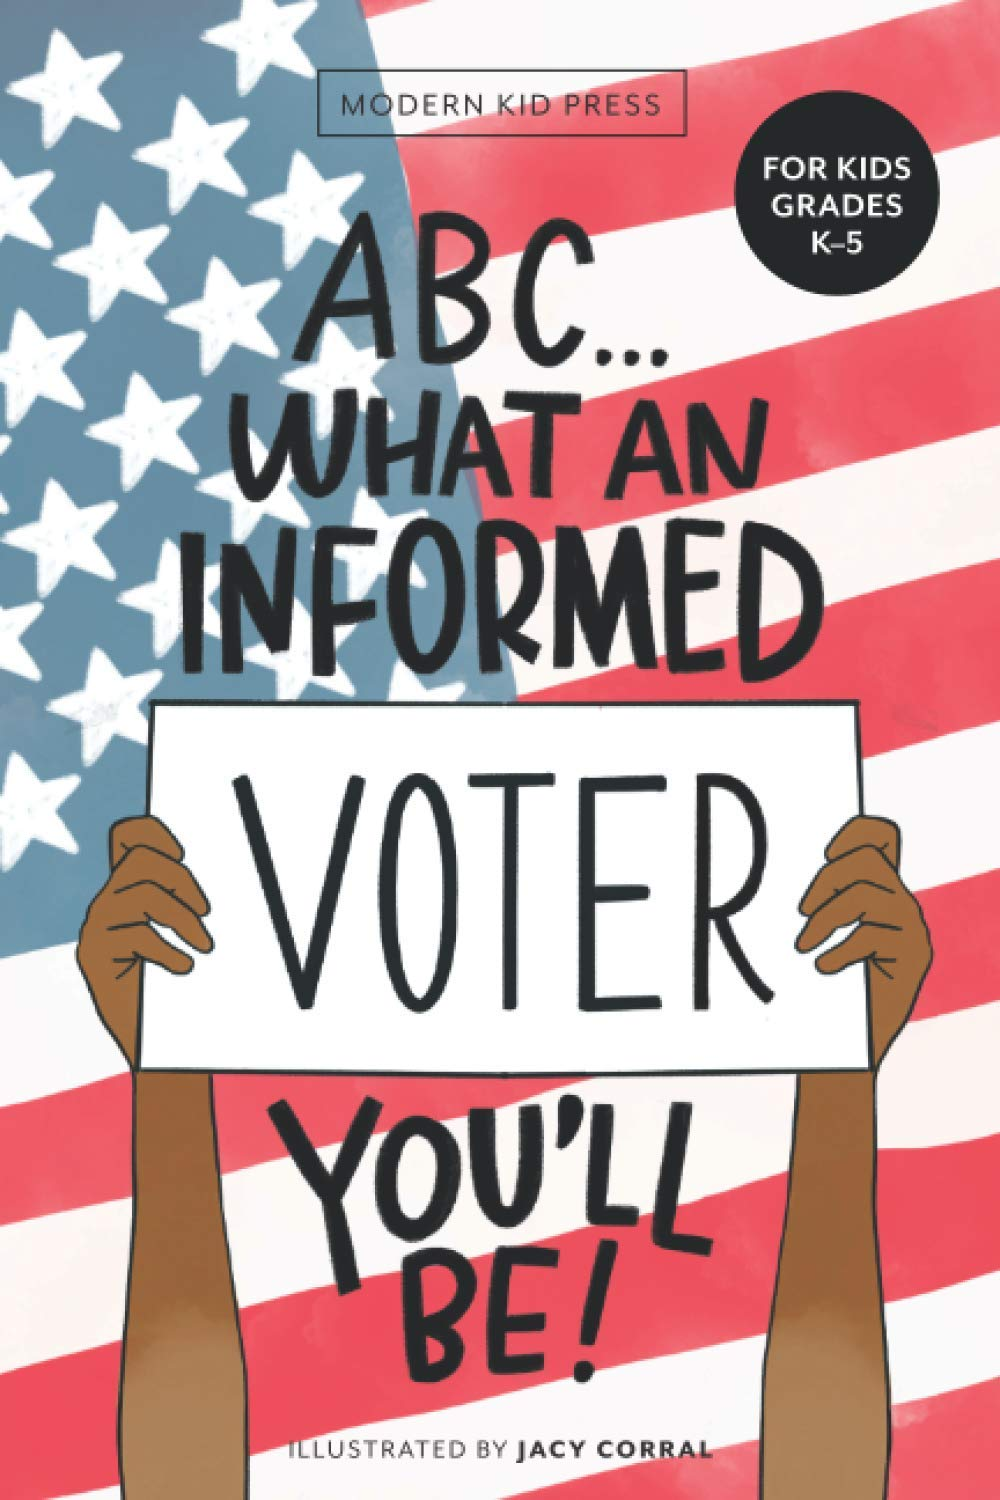 ABC! What An Informed Voter You'll Be: An A to Z Overview of US Government, American Politics and Elections for Children